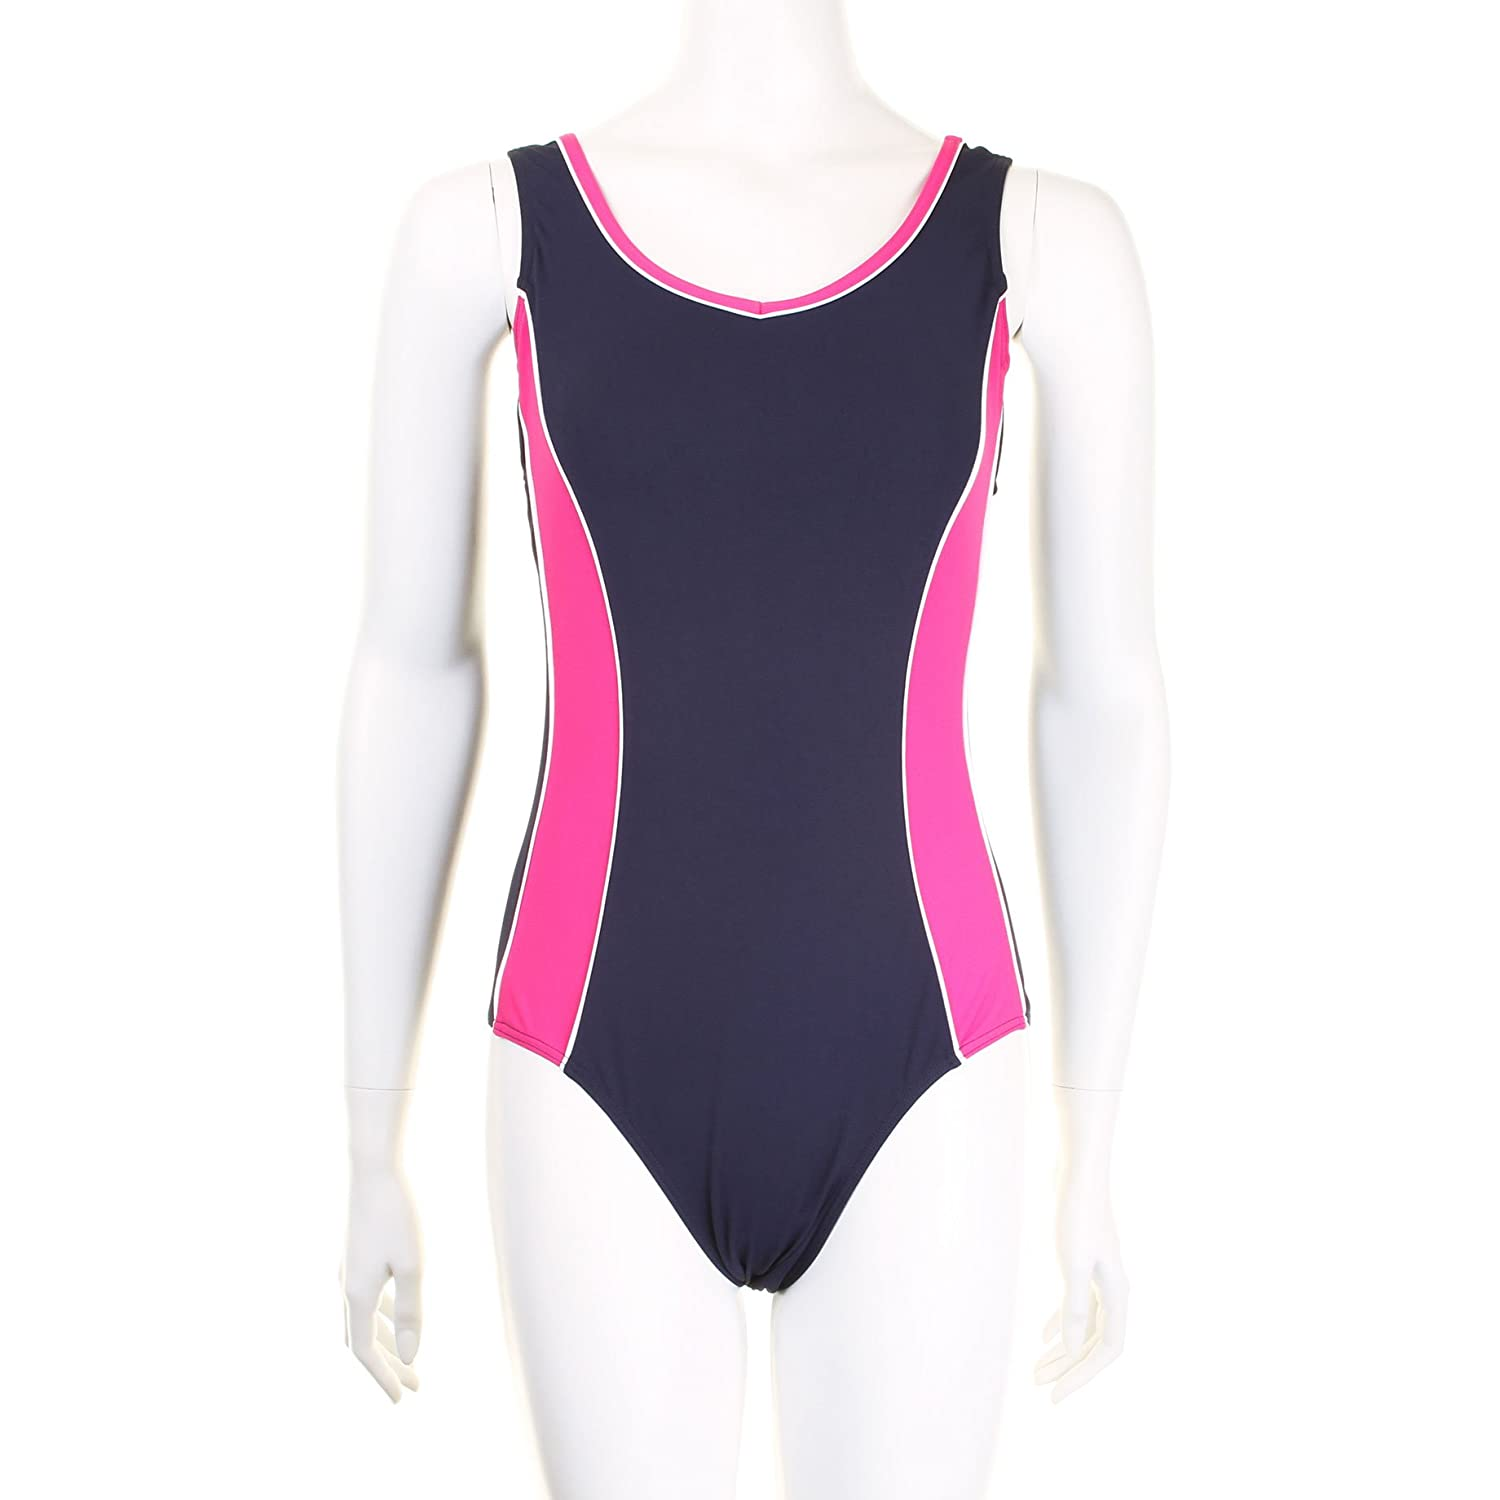 Maru Pacer Panel Low Leg Elite, Marineblau und Pink